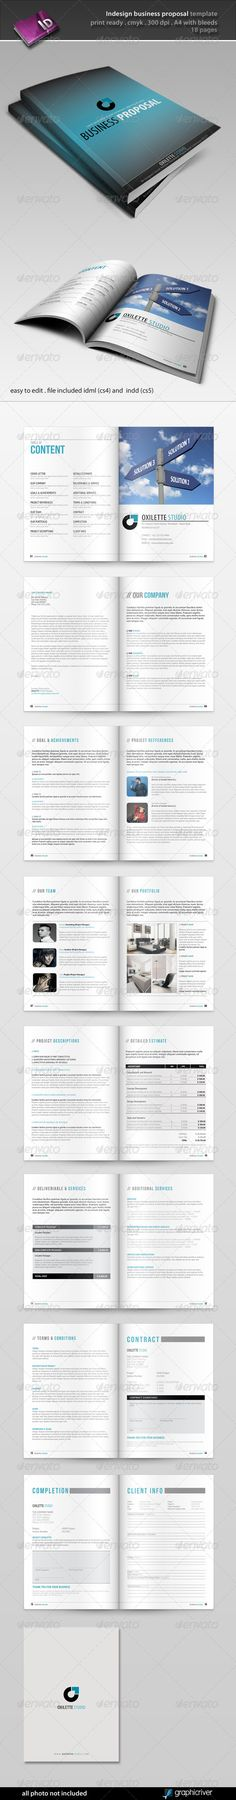 Gstudio Web Proposal Template V  Proposal Templates Proposals